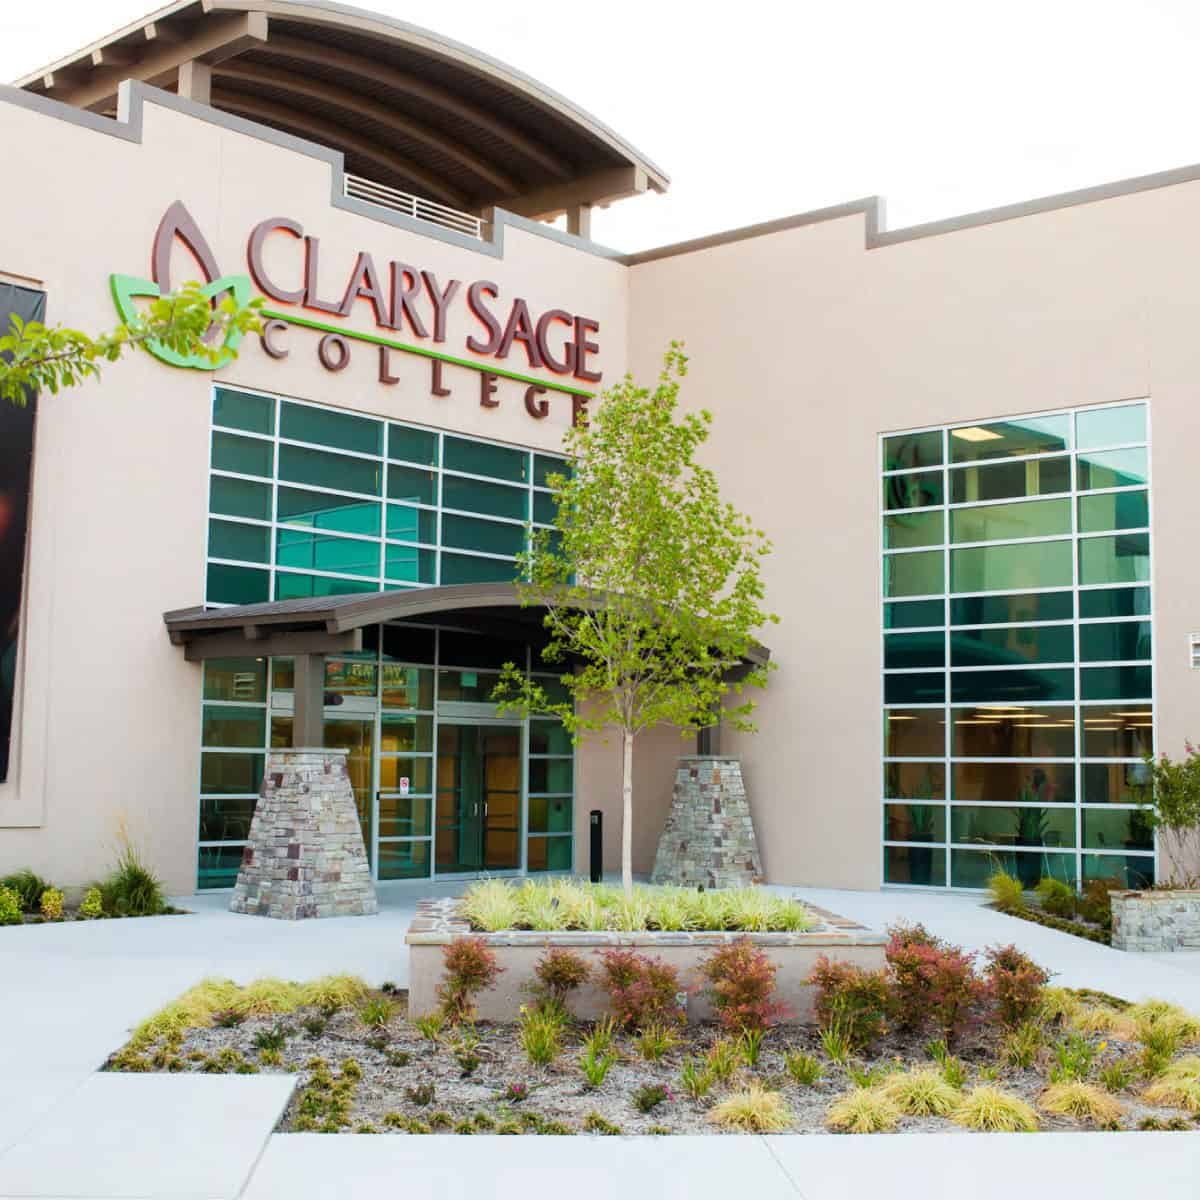 clary sage college building